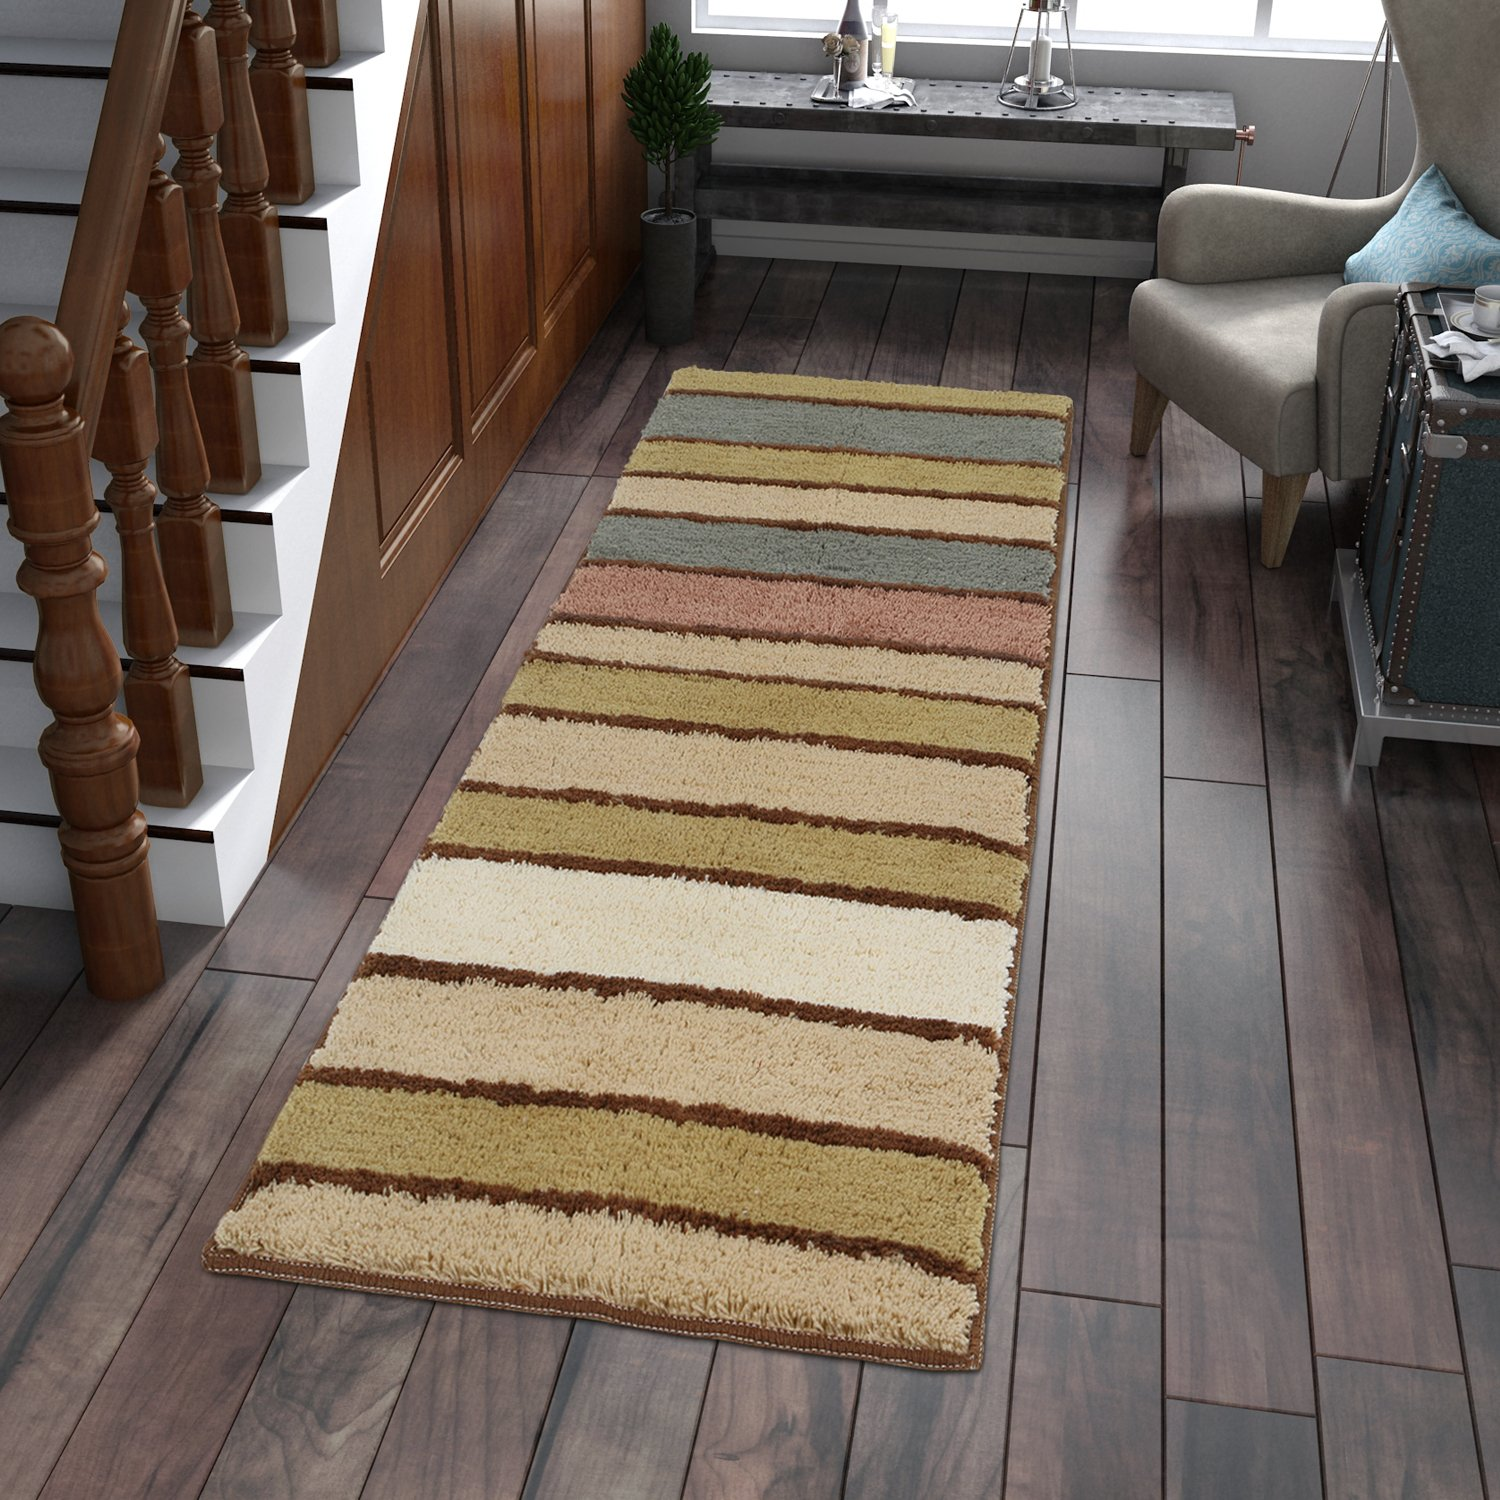 Lifewit Multicolor Stripe Long Area Runner Rug 60 x 180cm (2x6 feet) Vintage Saxony Woven Hallway Runners (Style-2)